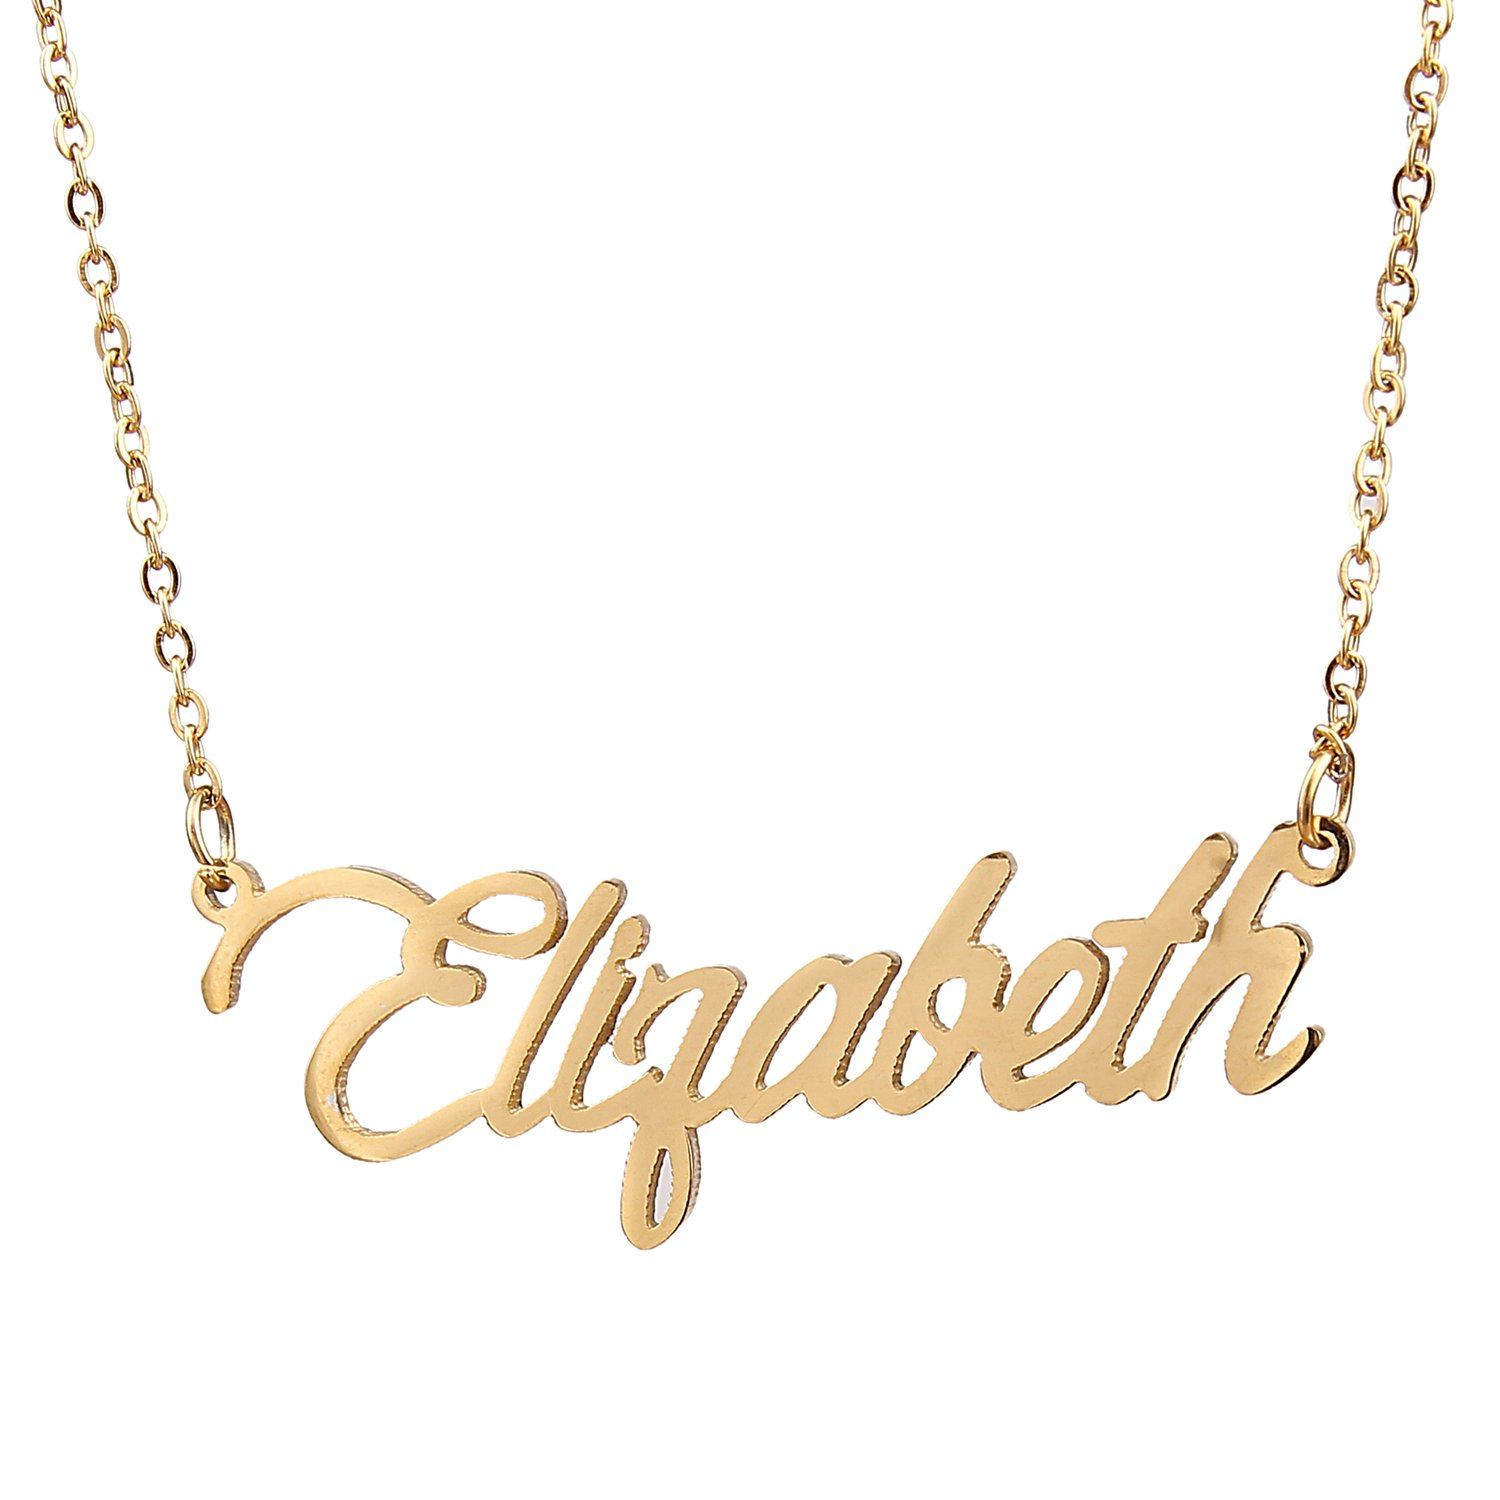 Amazon aolo casual name pendant necklace elizabeth pendant amazon aolo casual name pendant necklace elizabeth pendant jewelry jewelry aloadofball